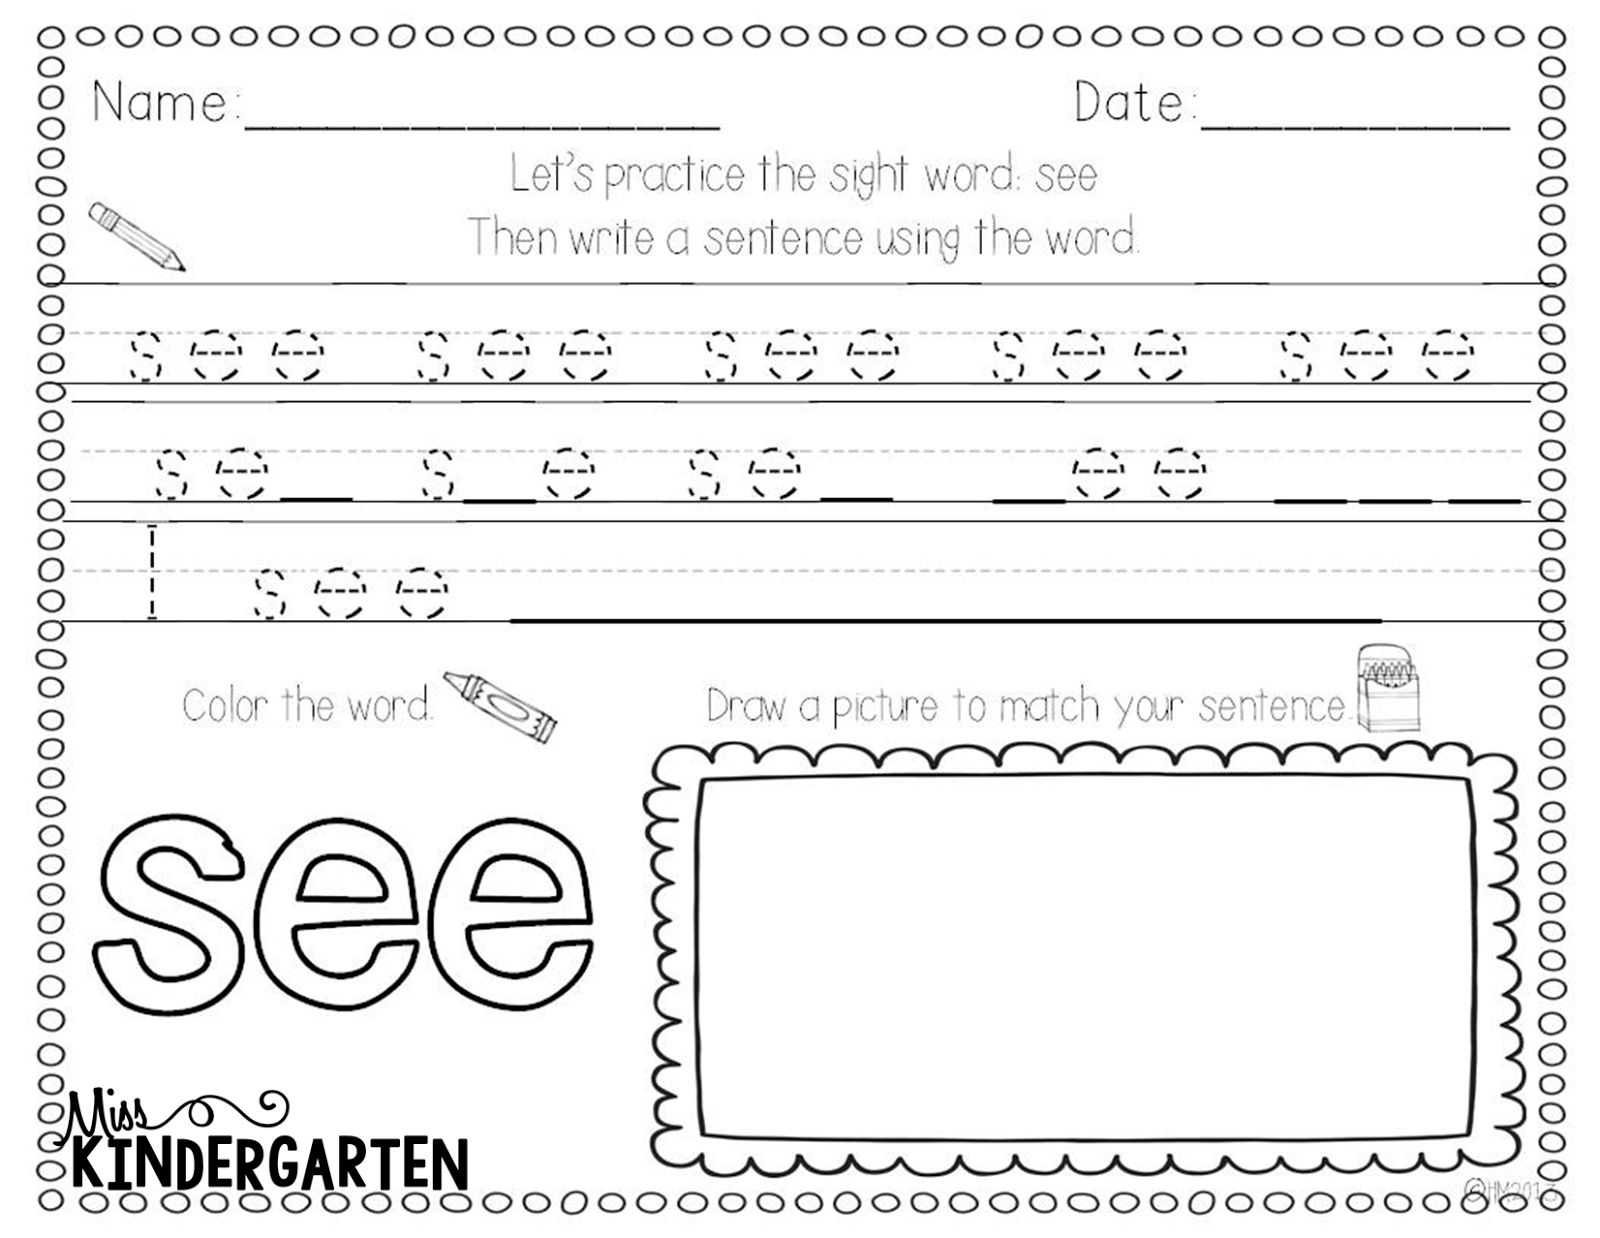 Worksheet Word Practice Worksheets sight word practice miss kindergarten httpwww teacherspayteachers comproductsight word